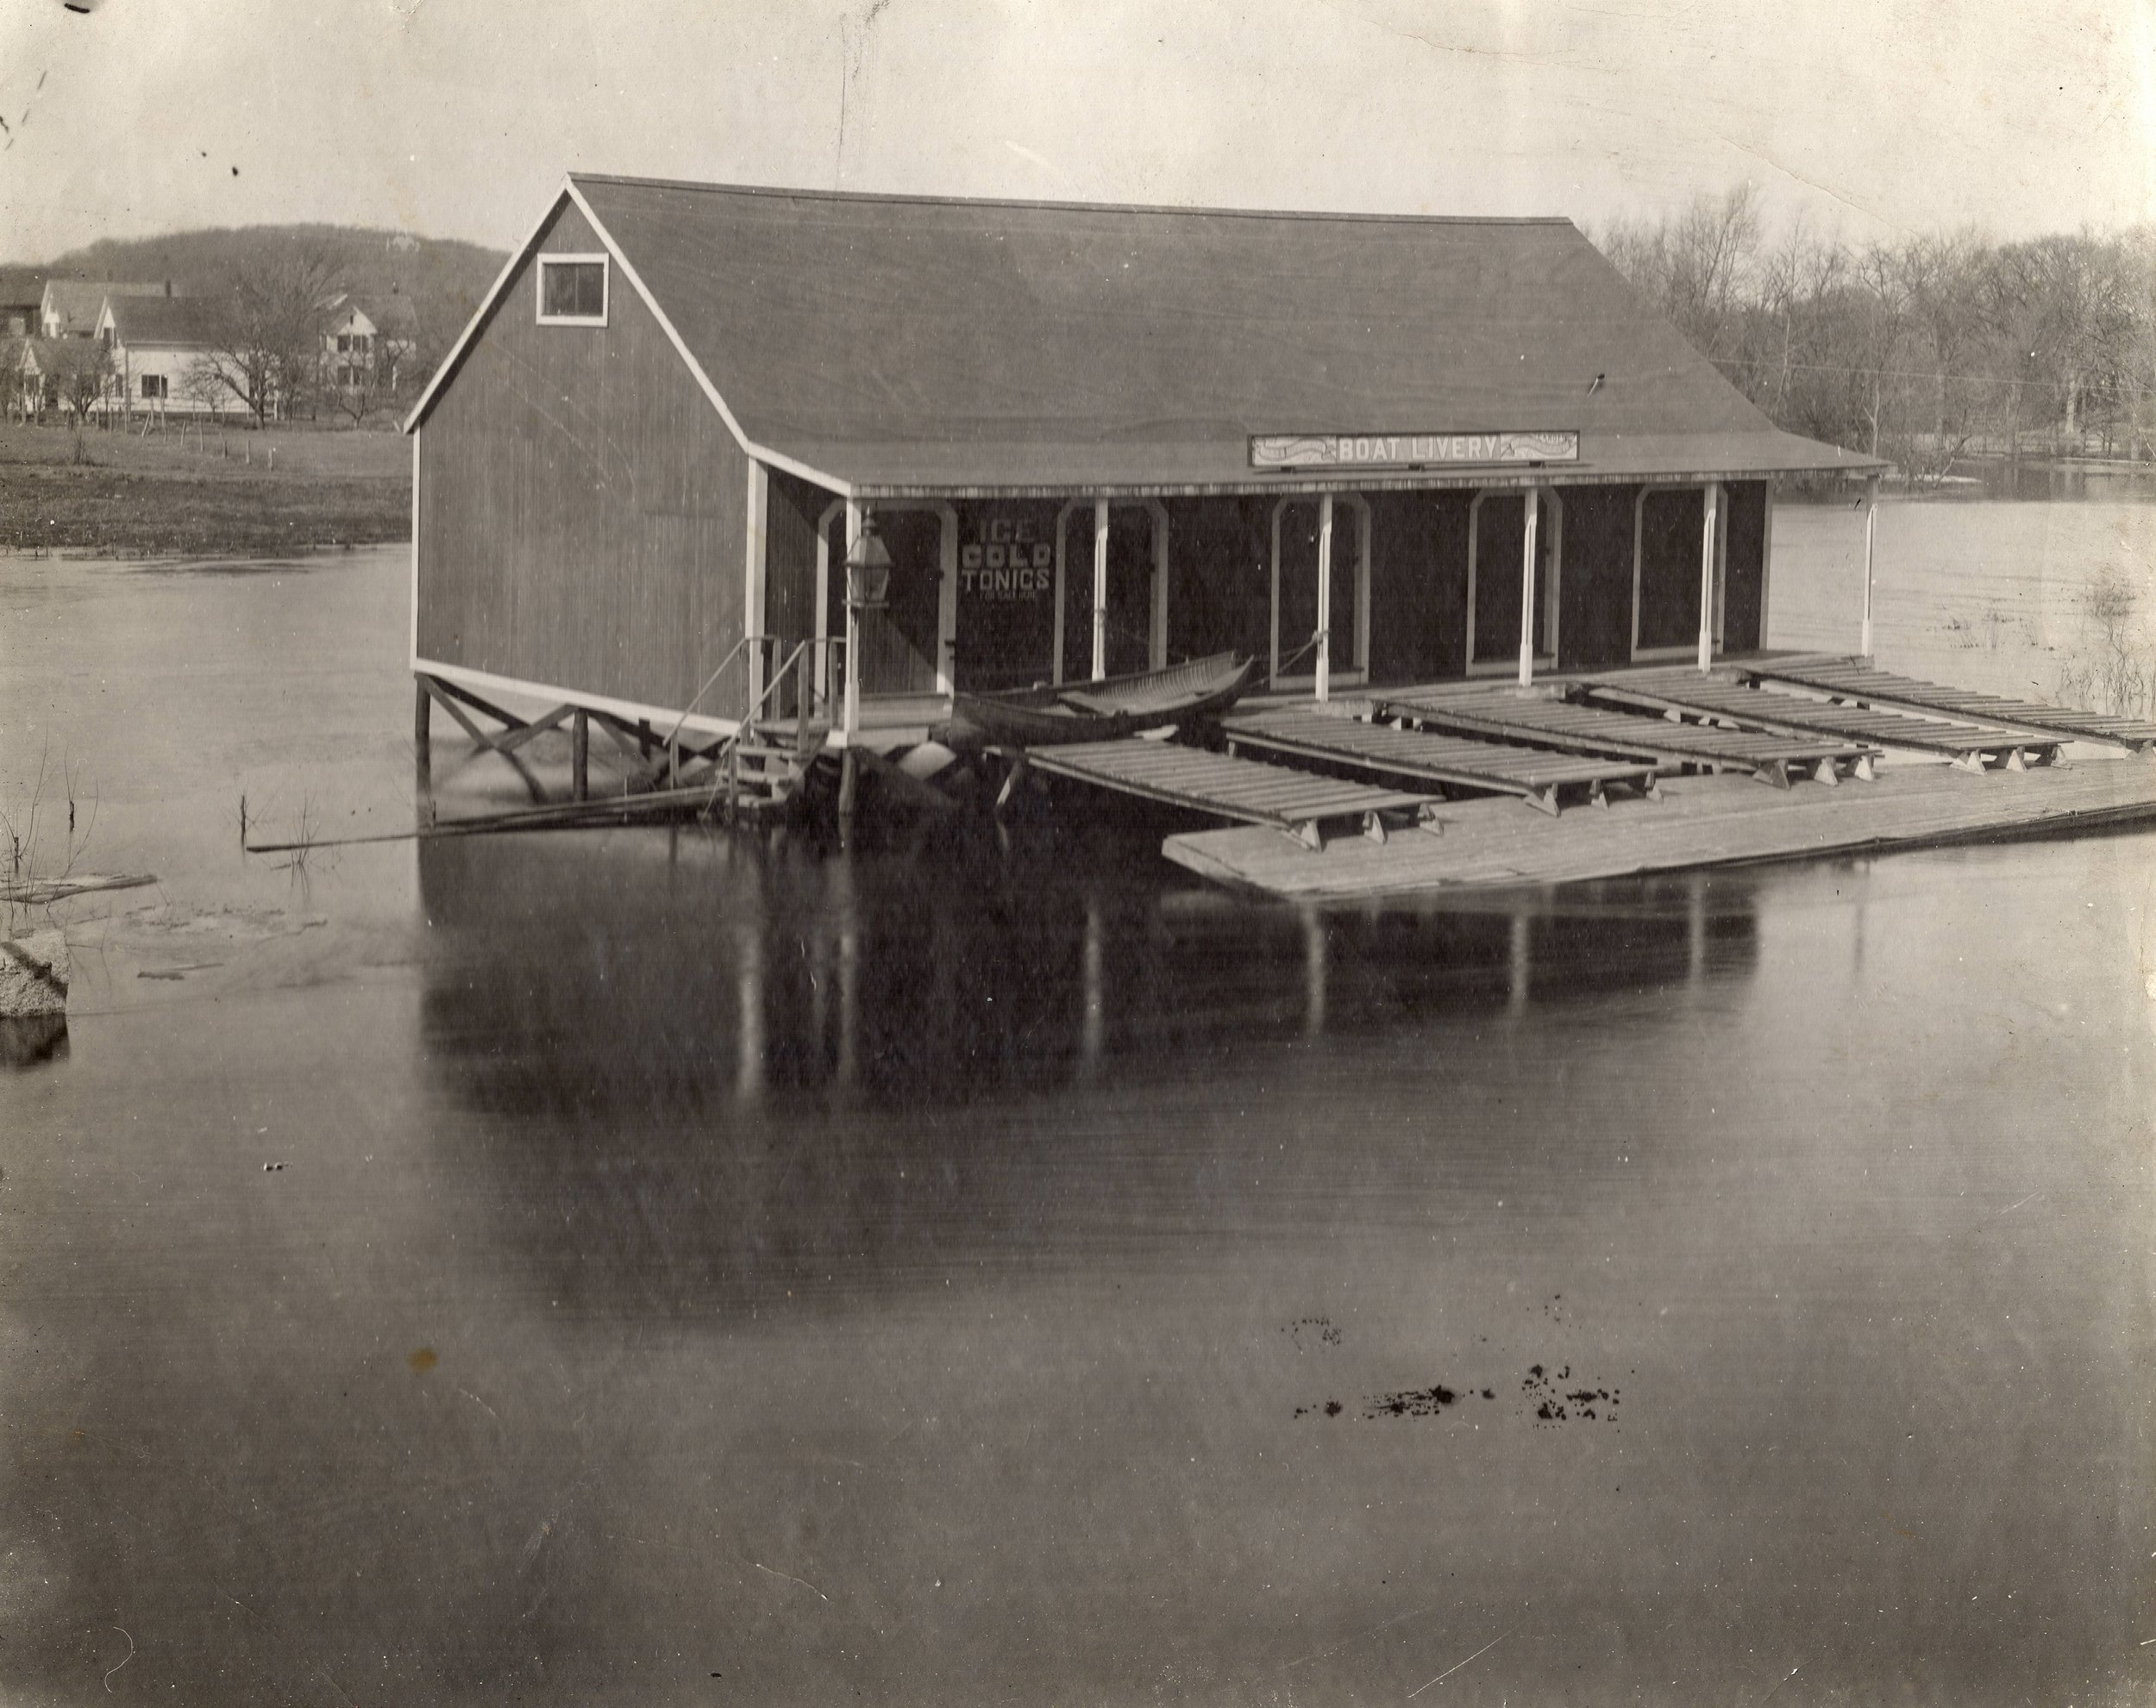 Flood damage at Heinlein Boat and Canoe Livery